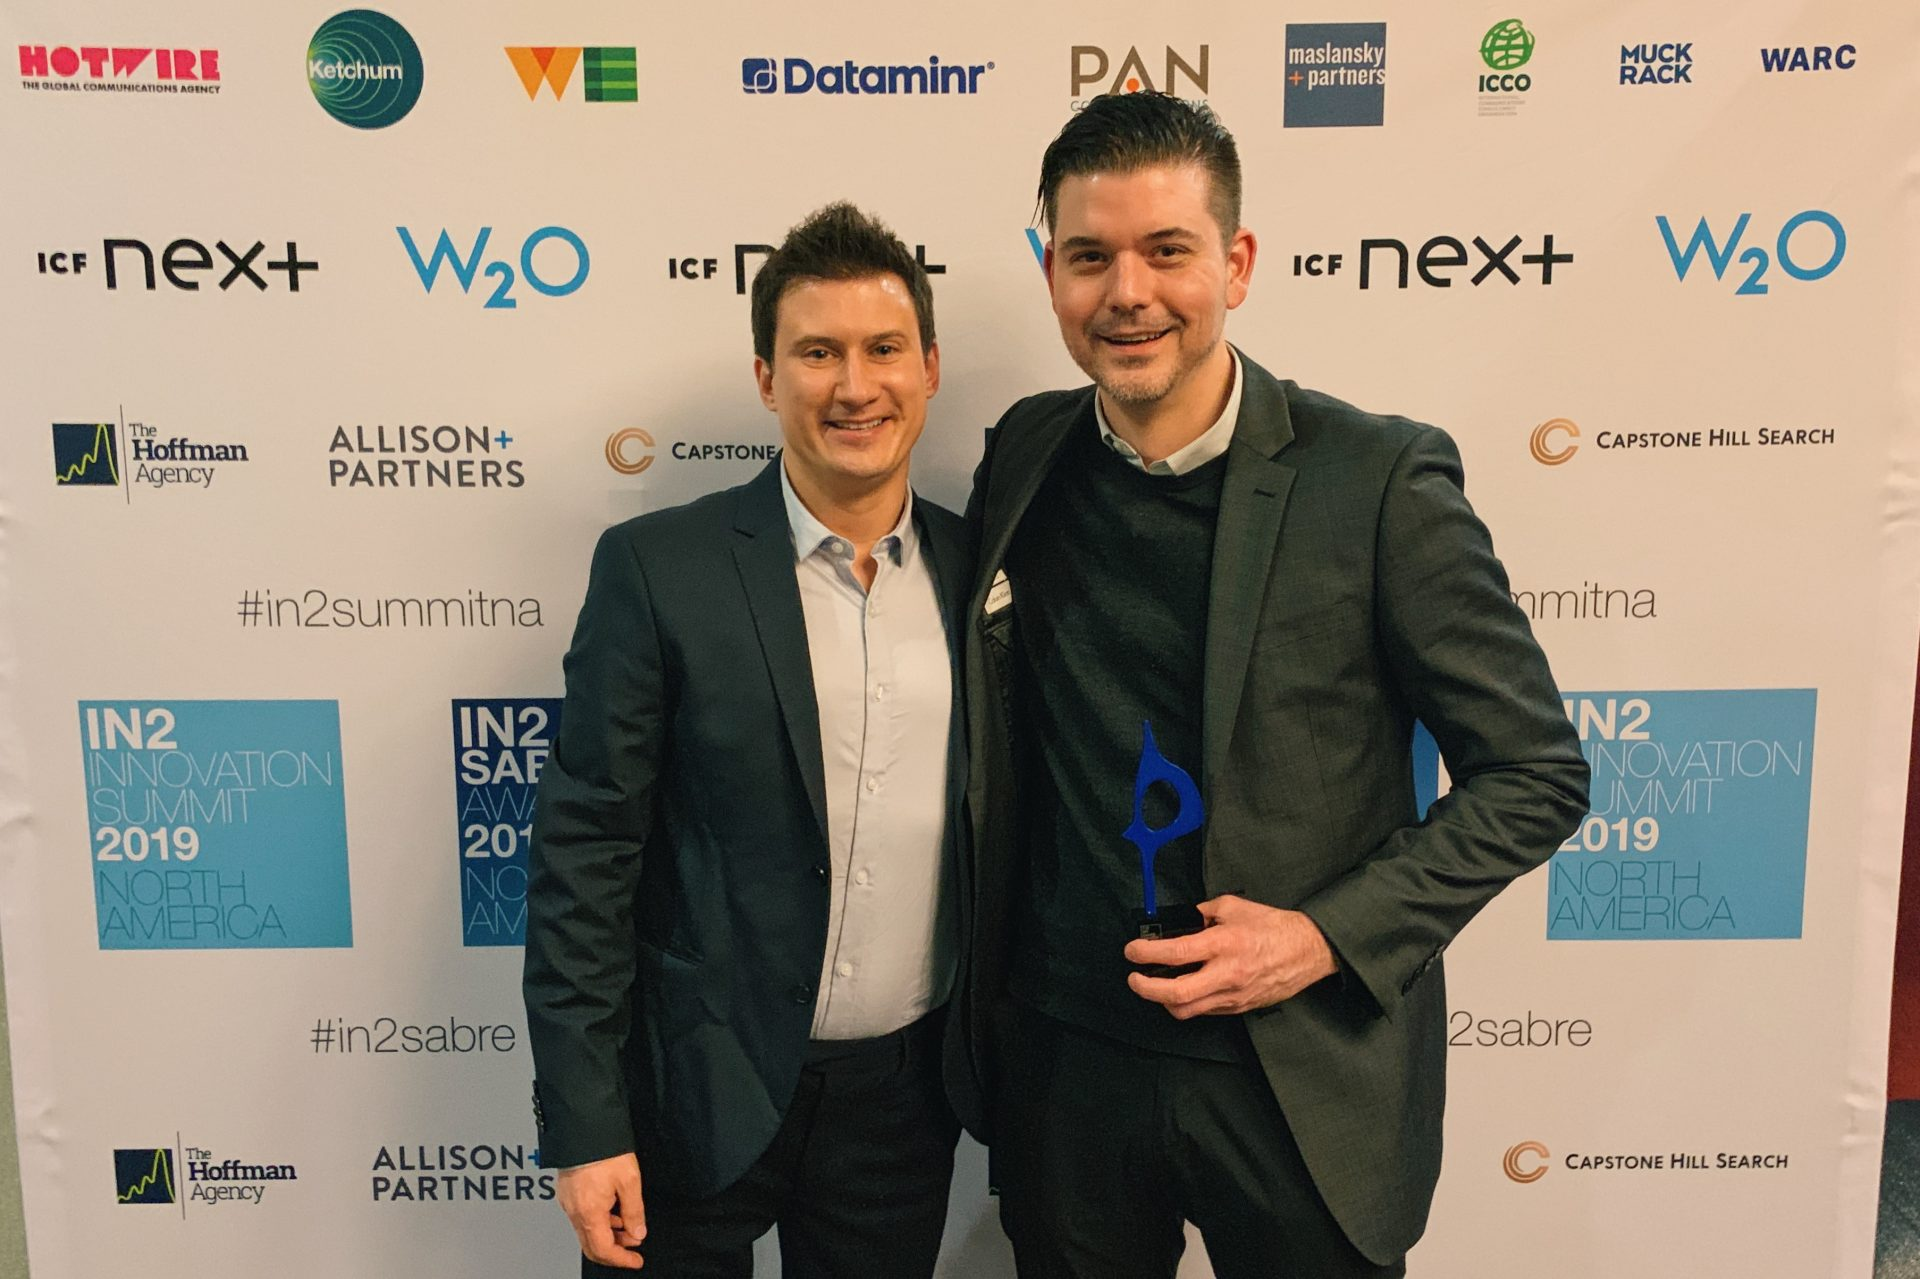 Weber Shandwick Wins In2 SABRE Award for 'Q' AI Tool at The Holmes Report's 2019 Ceremony